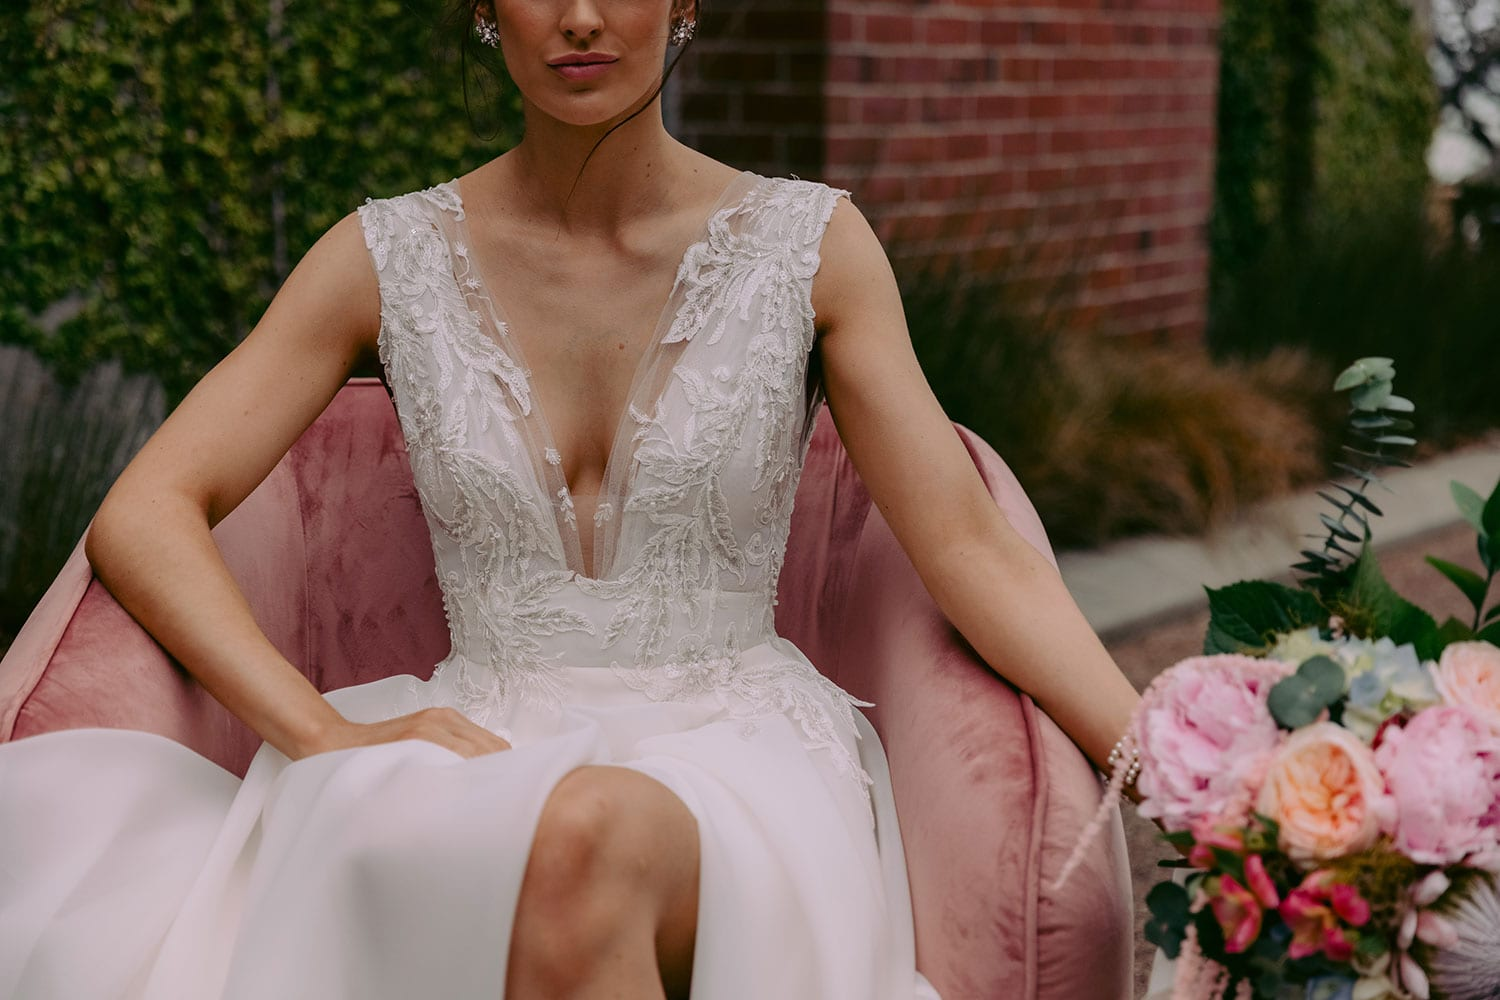 Rema Wedding gown from Vinka Design - This wedding dress has a bold design with a feminine style. Layers of dreamy satin organza with deep folds that open to reveal a split, and structured lace bodice that tapers at the waist to accentuates the figure. Model wearing gown seated on chair.